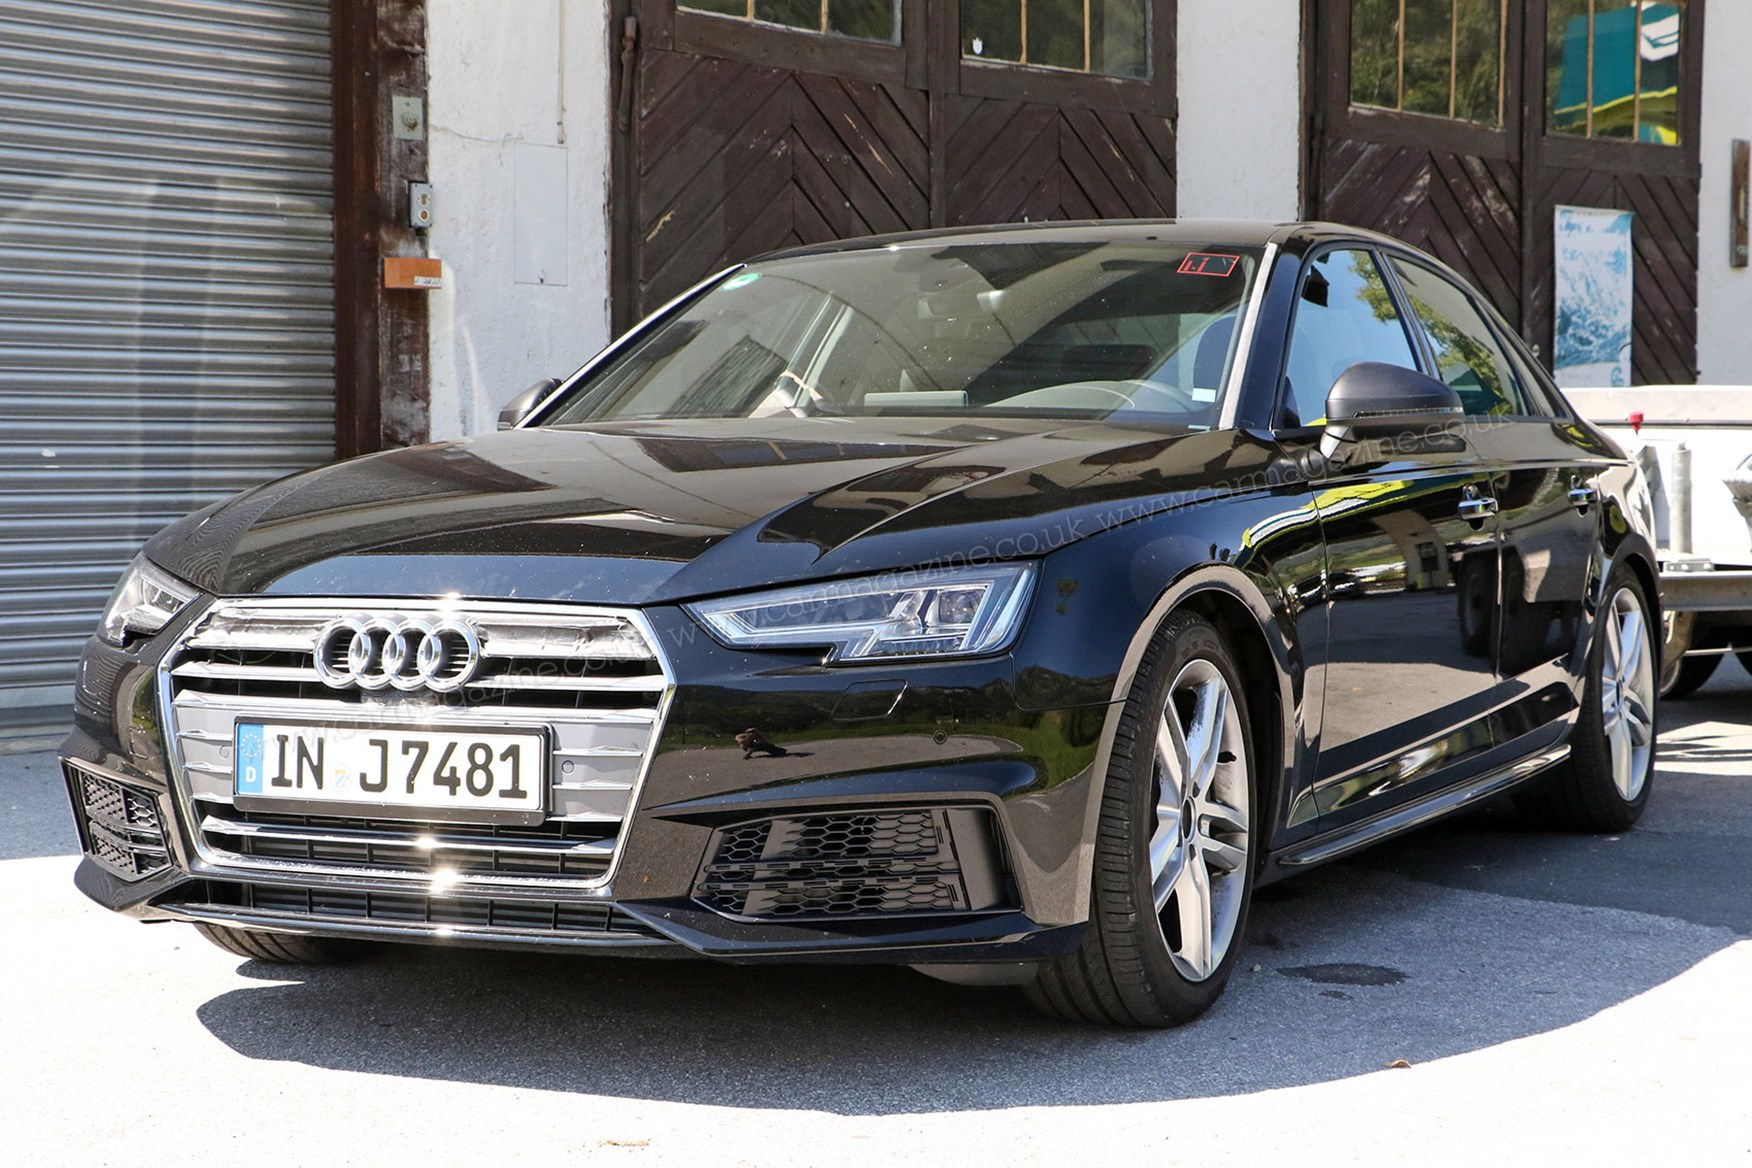 ... in 2016 Debadged S4 on towing duties New turbo V6 for 2016 Audi S4